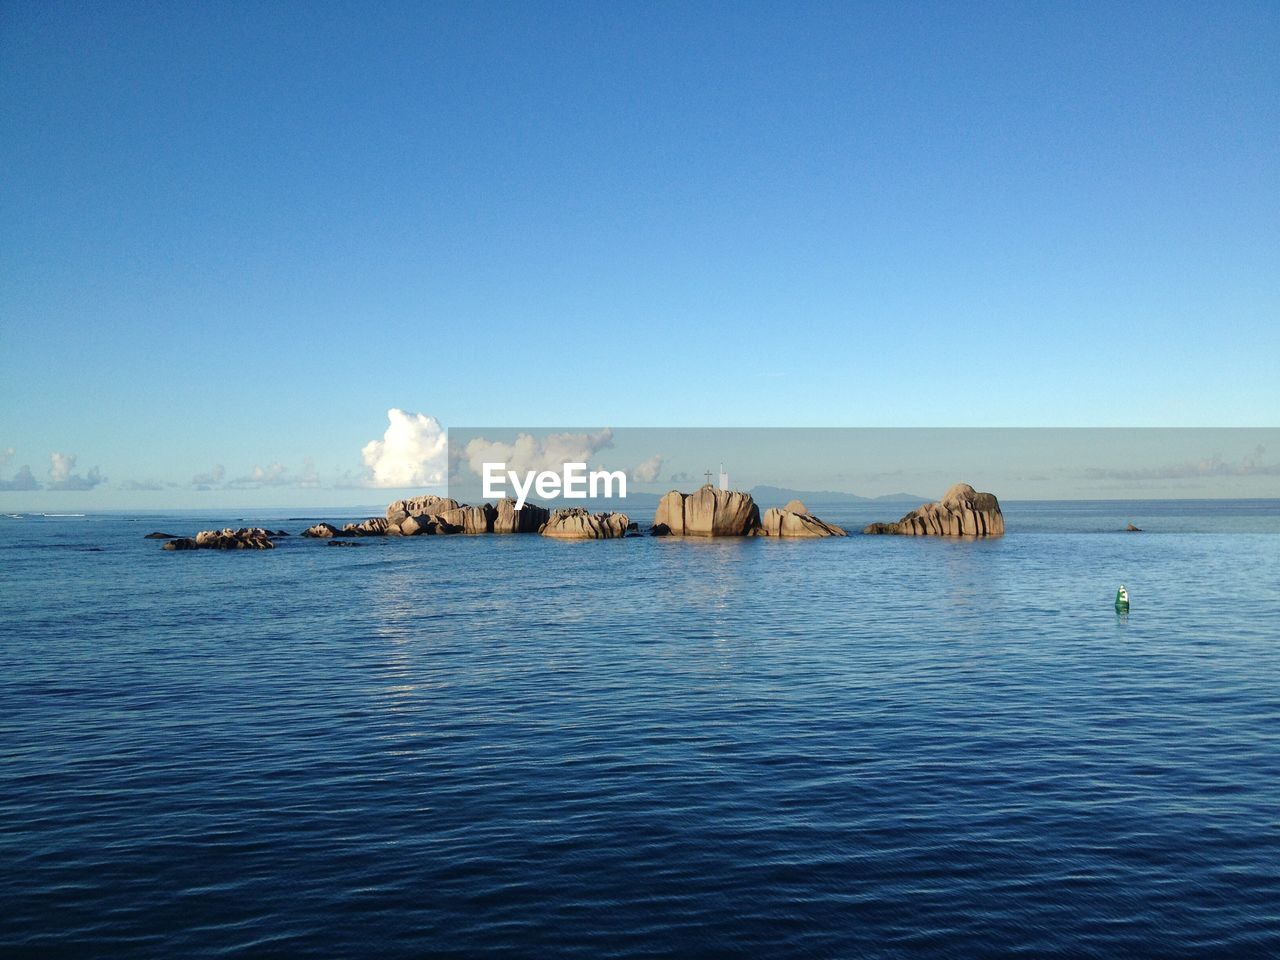 sea, tranquility, blue, scenics, water, beauty in nature, nature, tranquil scene, waterfront, outdoors, copy space, no people, day, sky, nautical vessel, horizon over water, clear sky, architecture